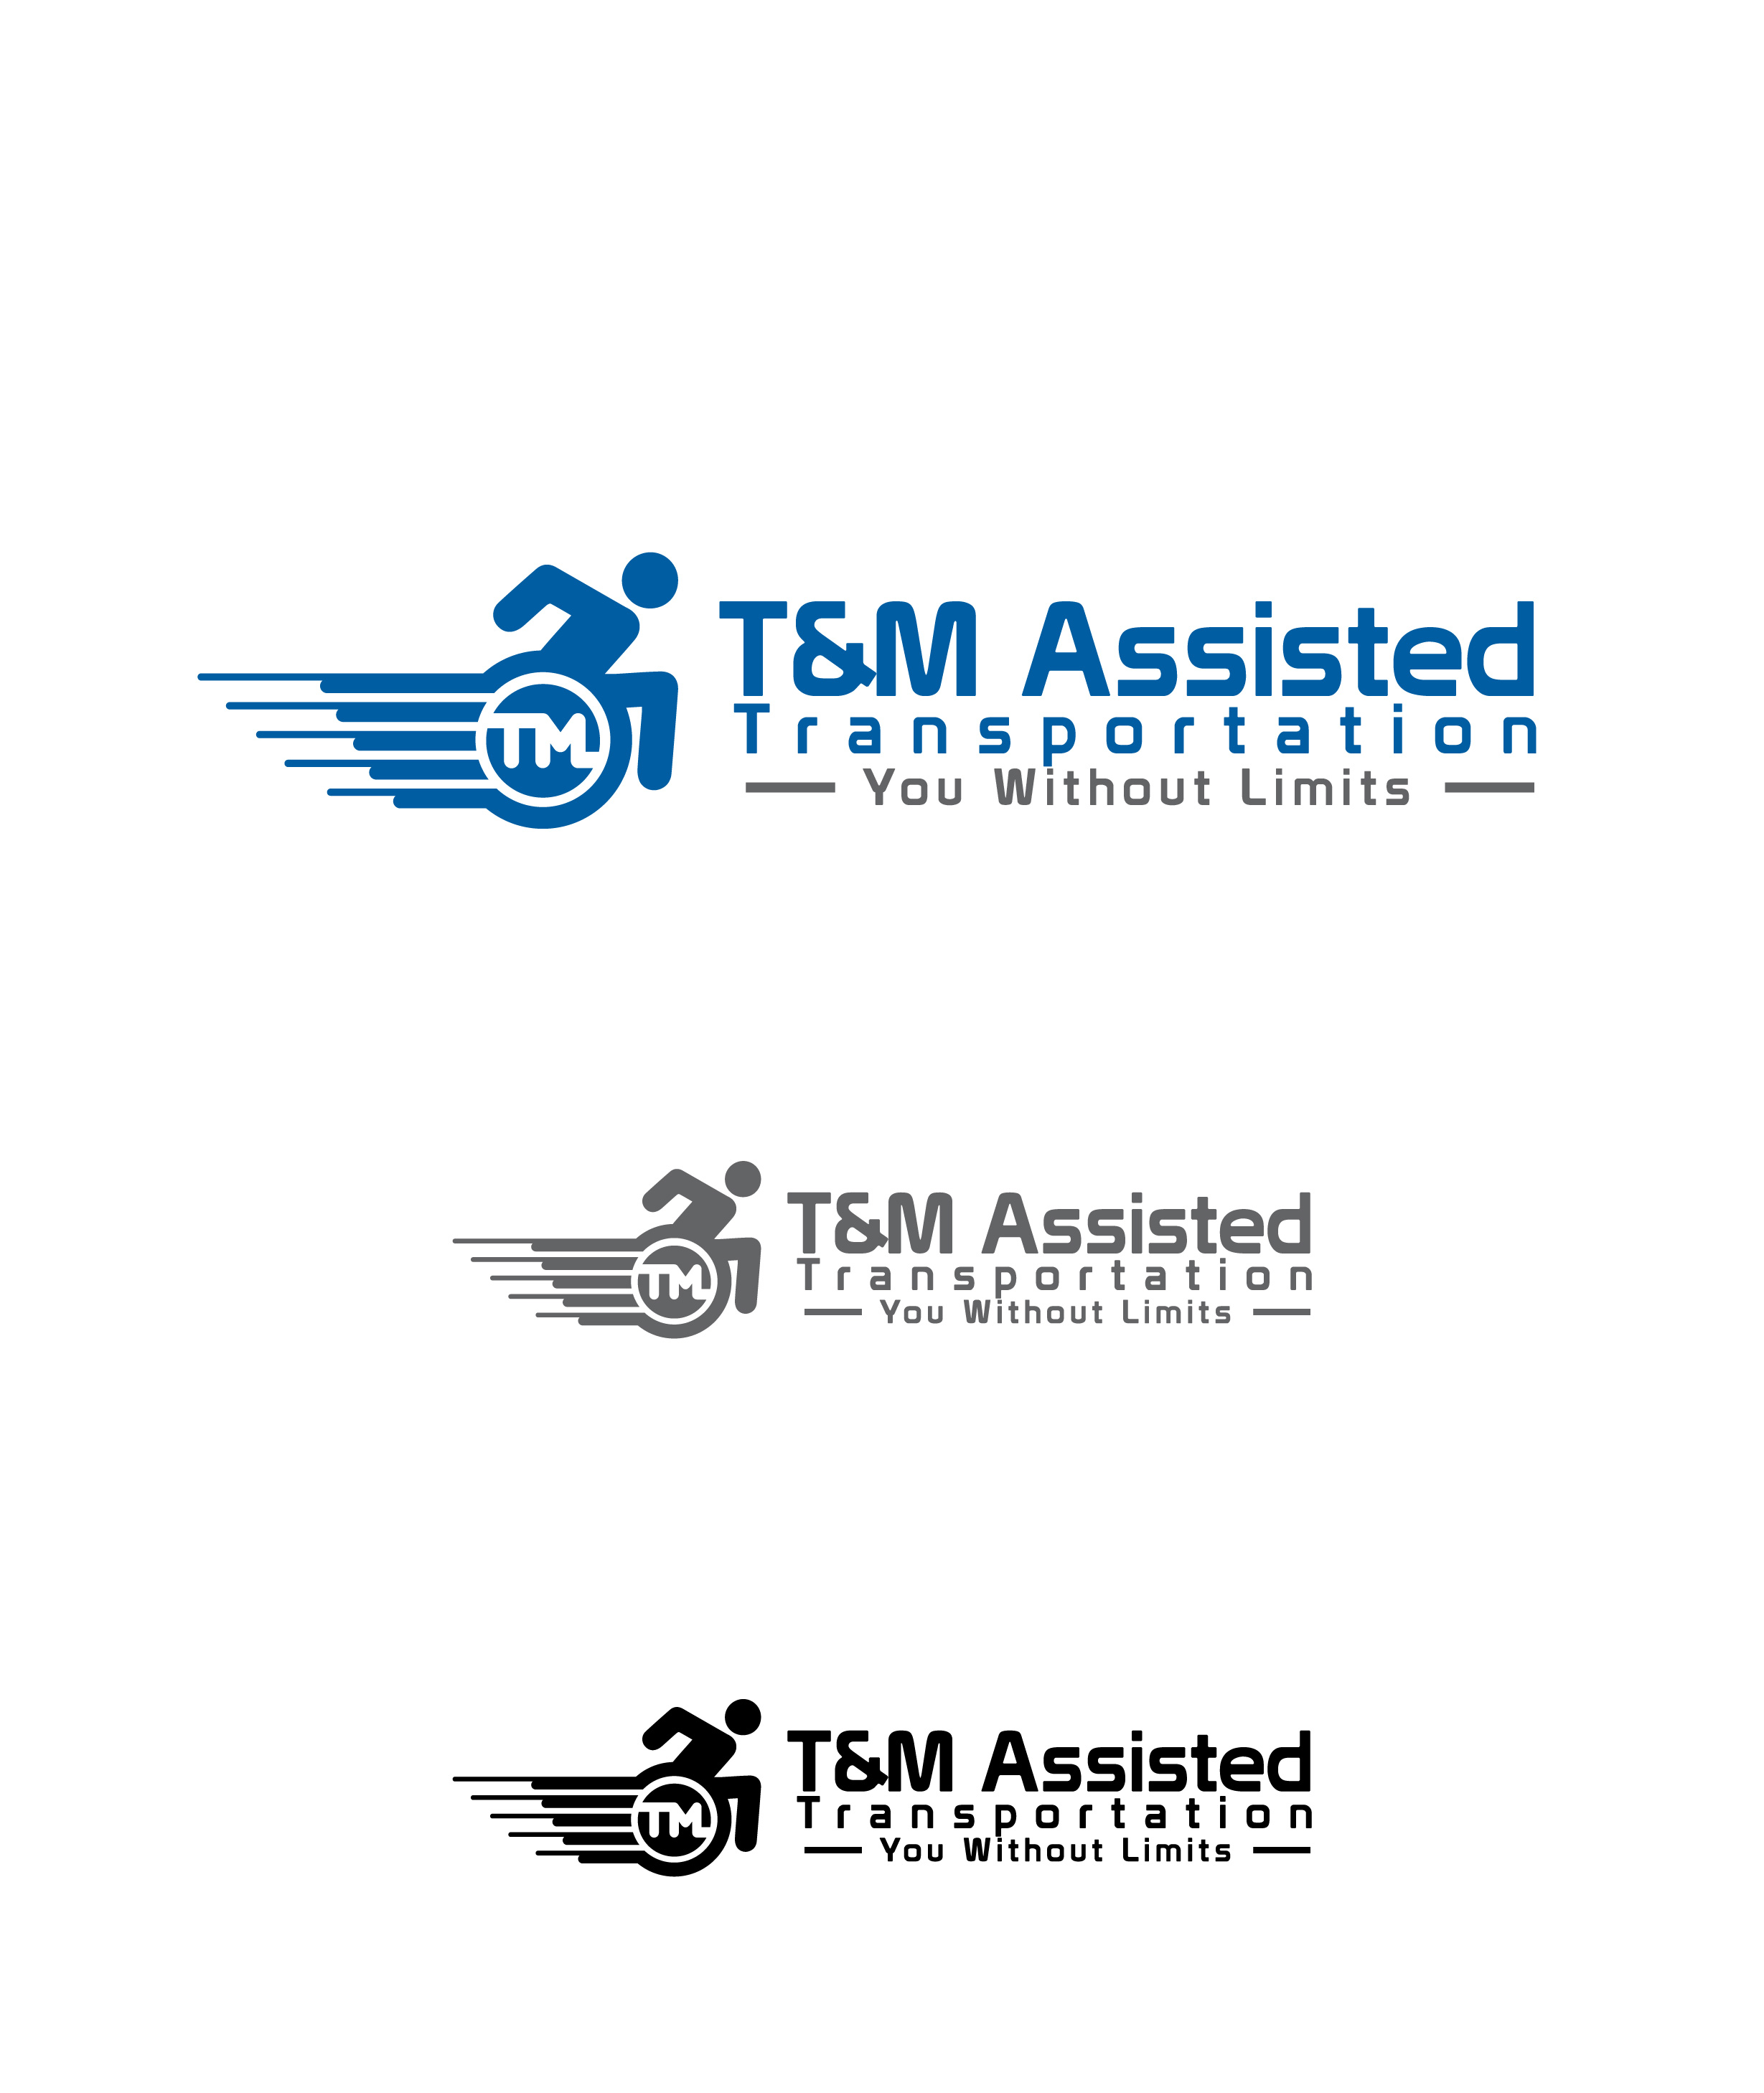 Logo Design by lagalag - Entry No. 44 in the Logo Design Contest Artistic Logo Design for T & M.